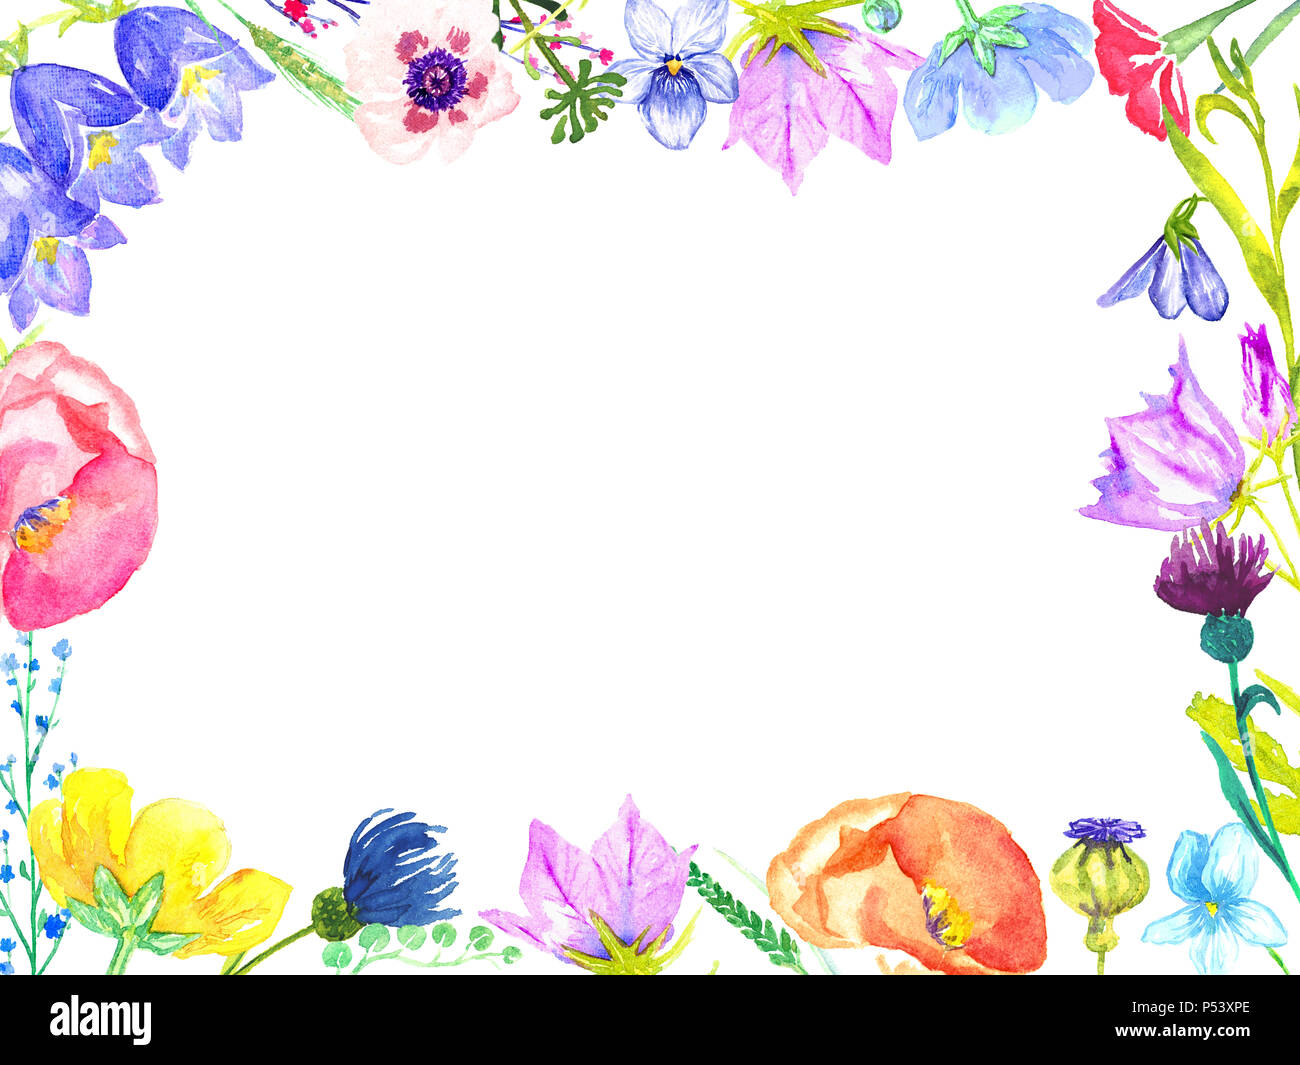 Horizontal frame of colorful wild flowers: bellflowers, violets, forget-me, cornflower, poppies (forest and meadow), hand painted watercolor, design - Stock Image